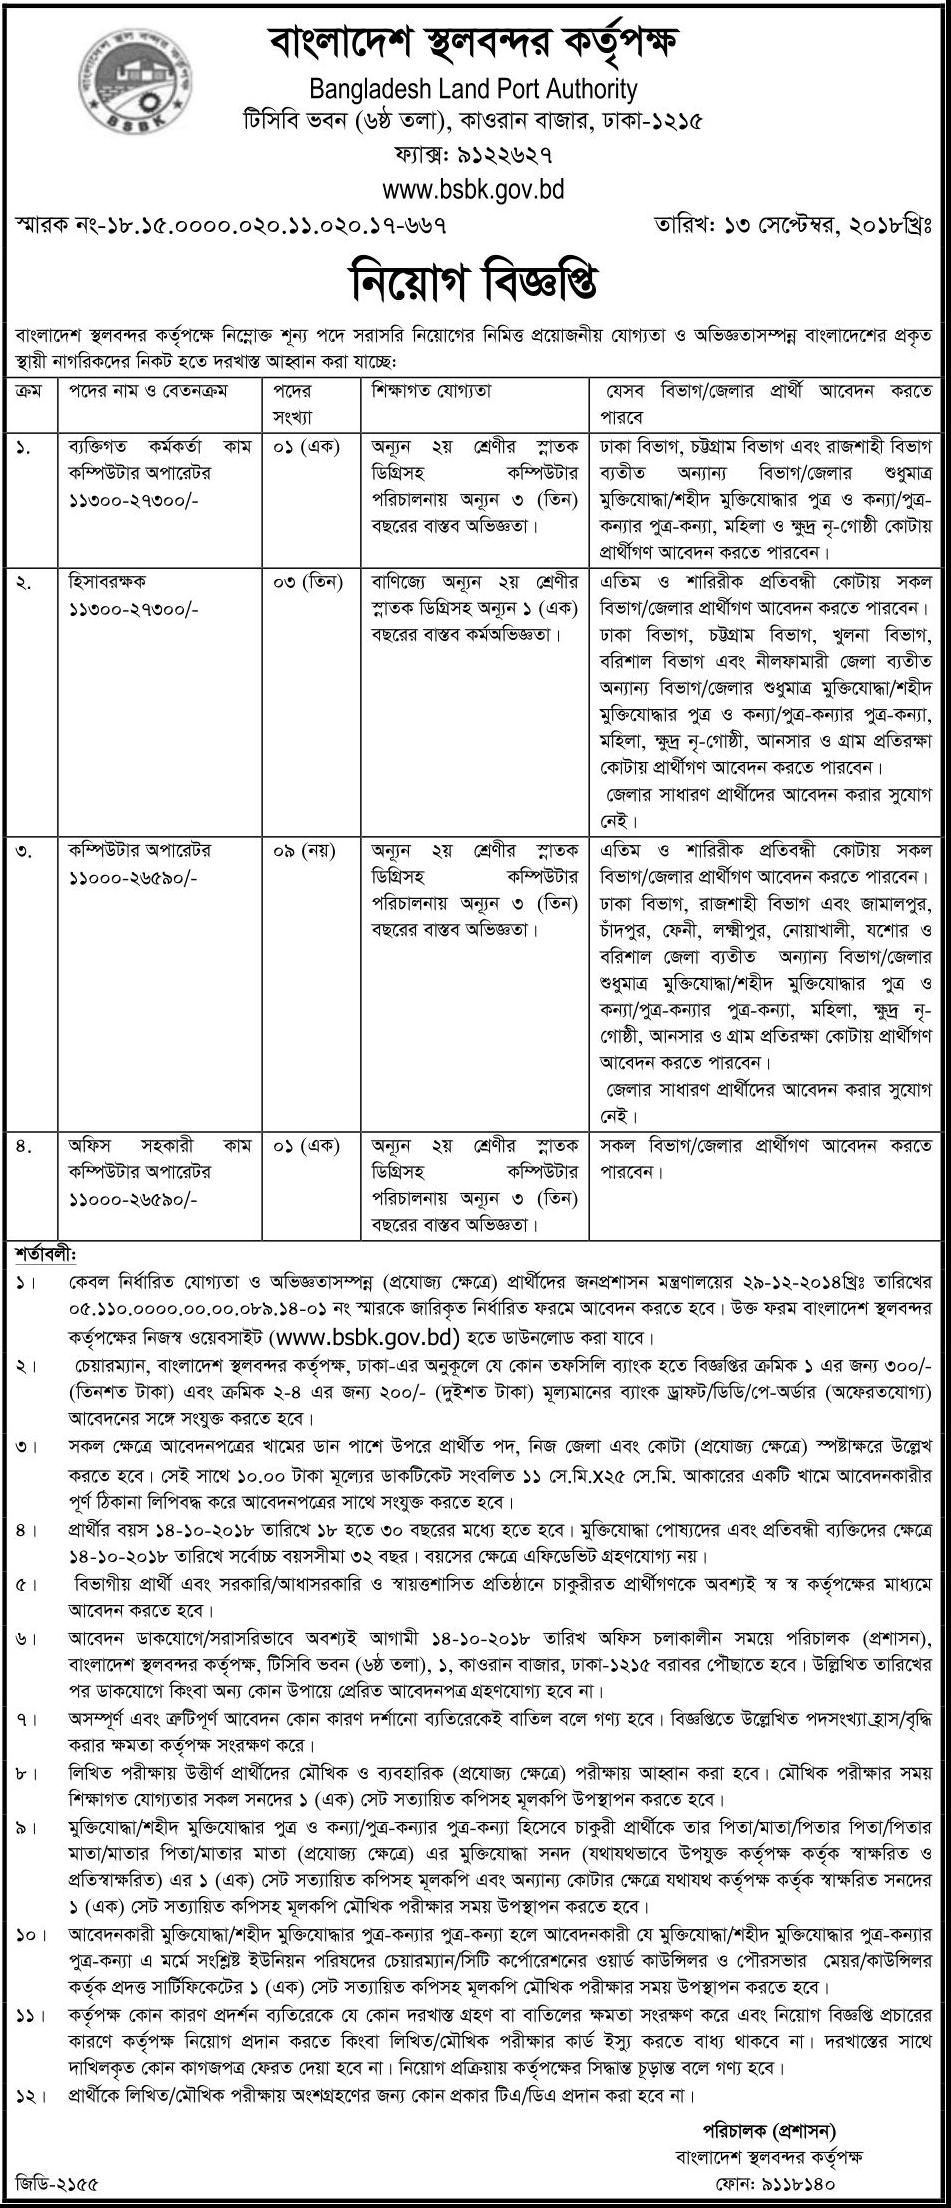 Bangladesh land Port Authority job circular